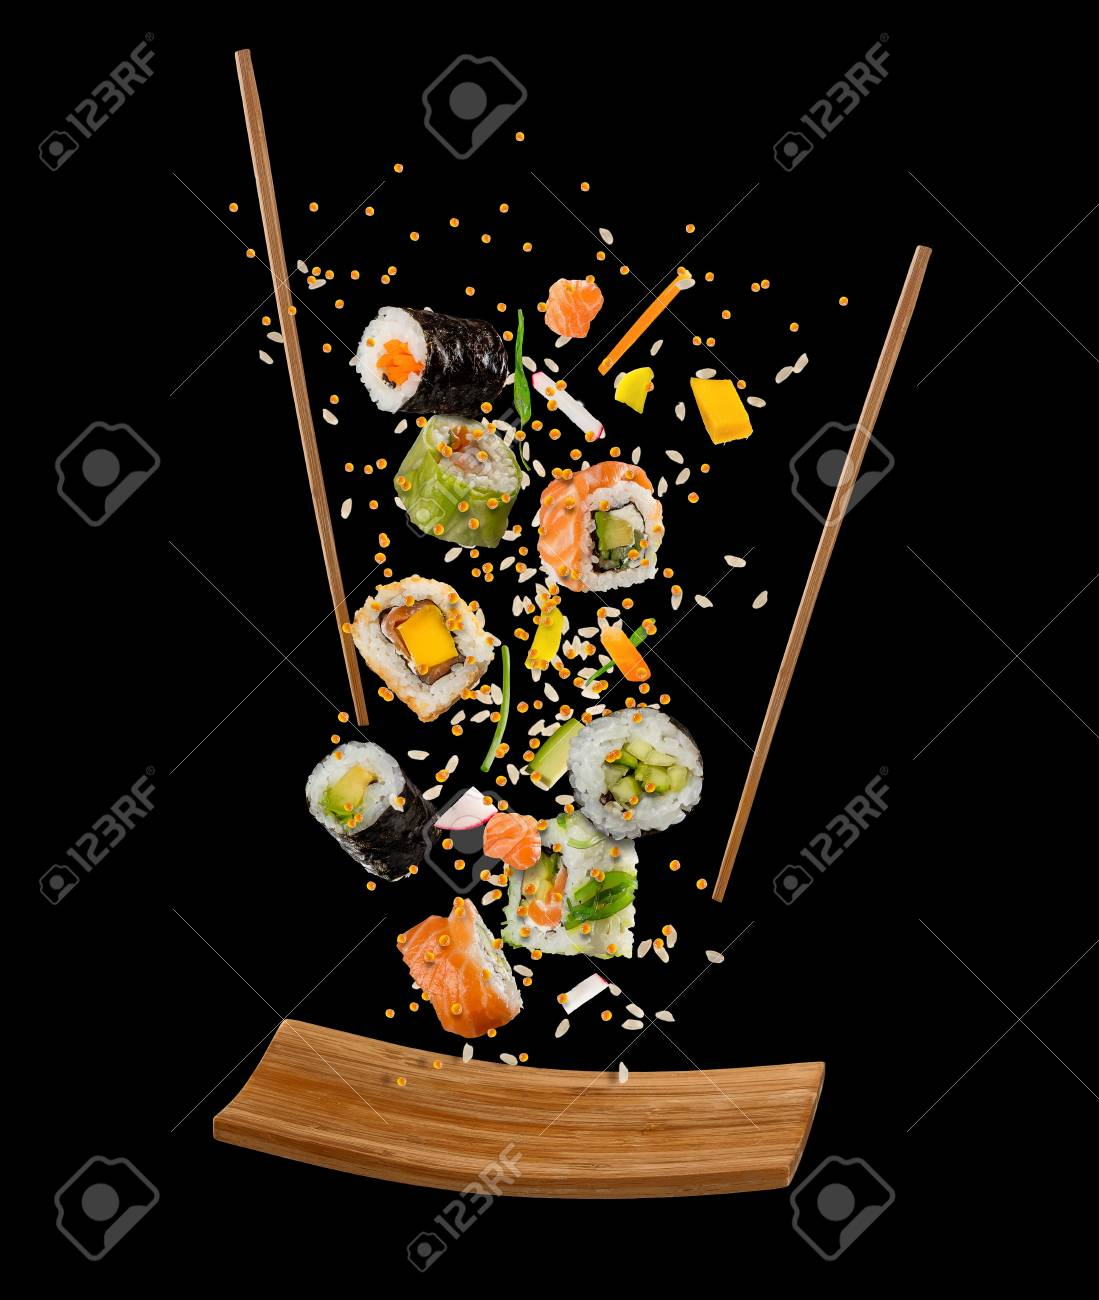 Flying pieces of sushi with wooden chopsticks and plate, isolated on black background. Flying food and motion concept. Very high resolution image - 93386829